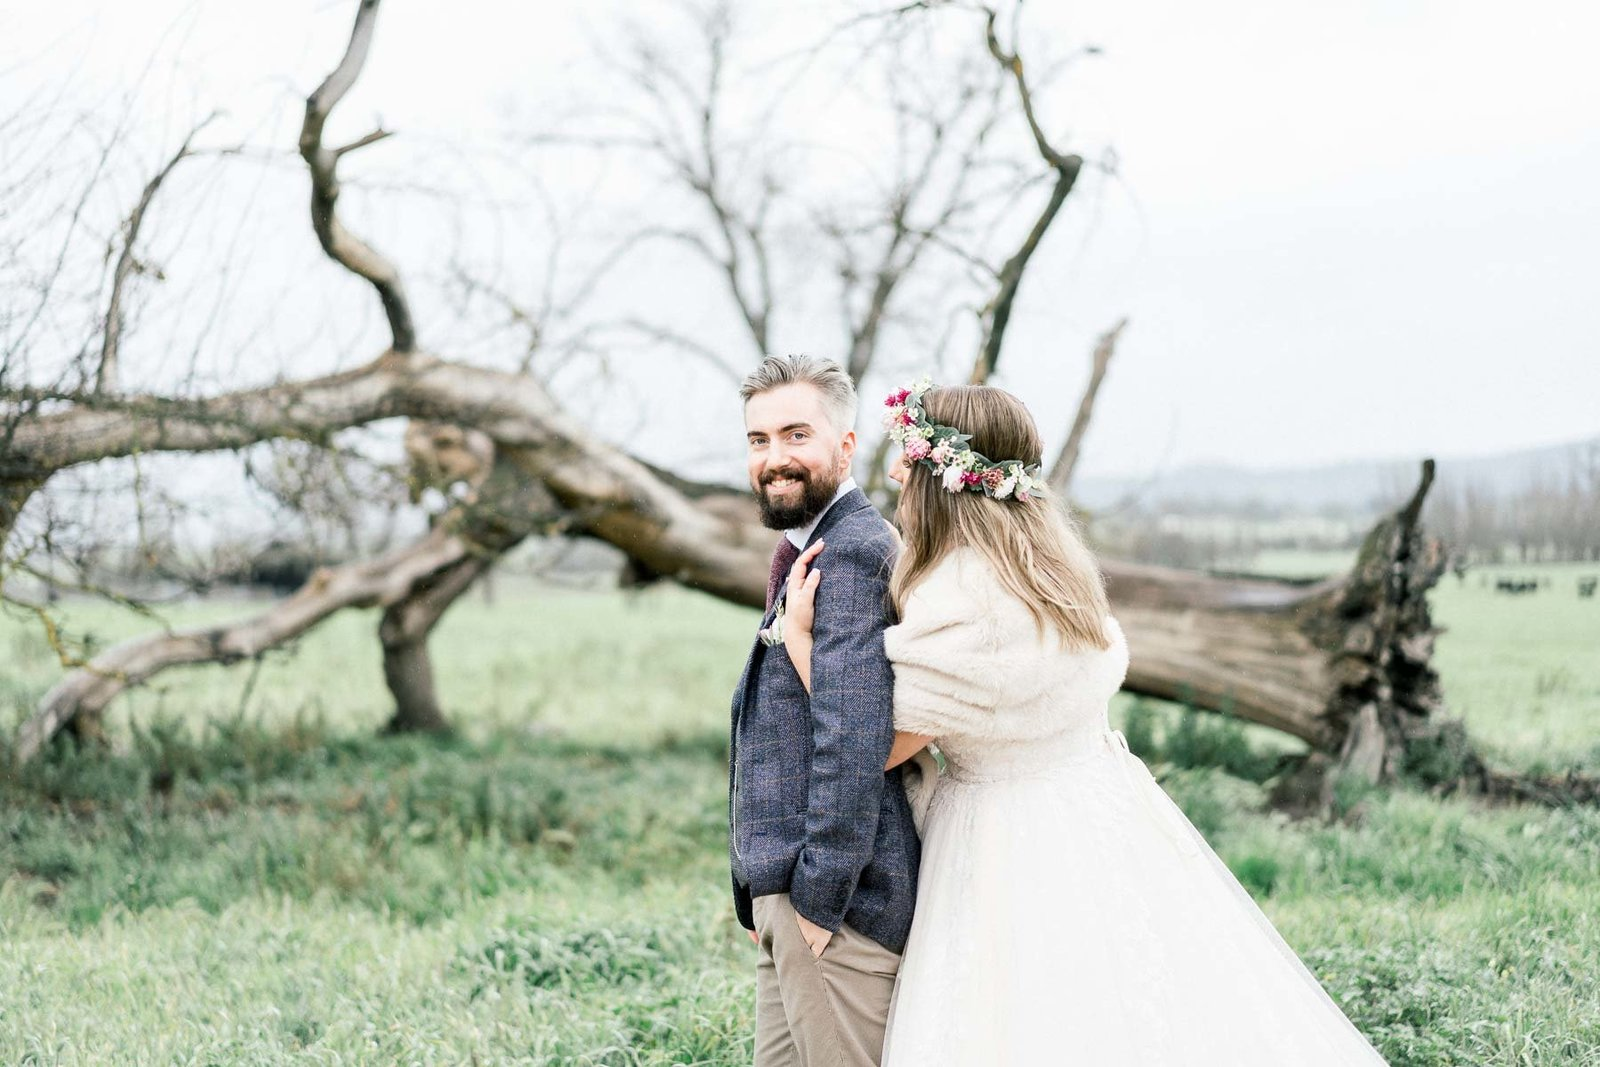 adams-farm-coldstream-yarra-valley-wedding-heart+soul-weddings-kel-jarryd-05606